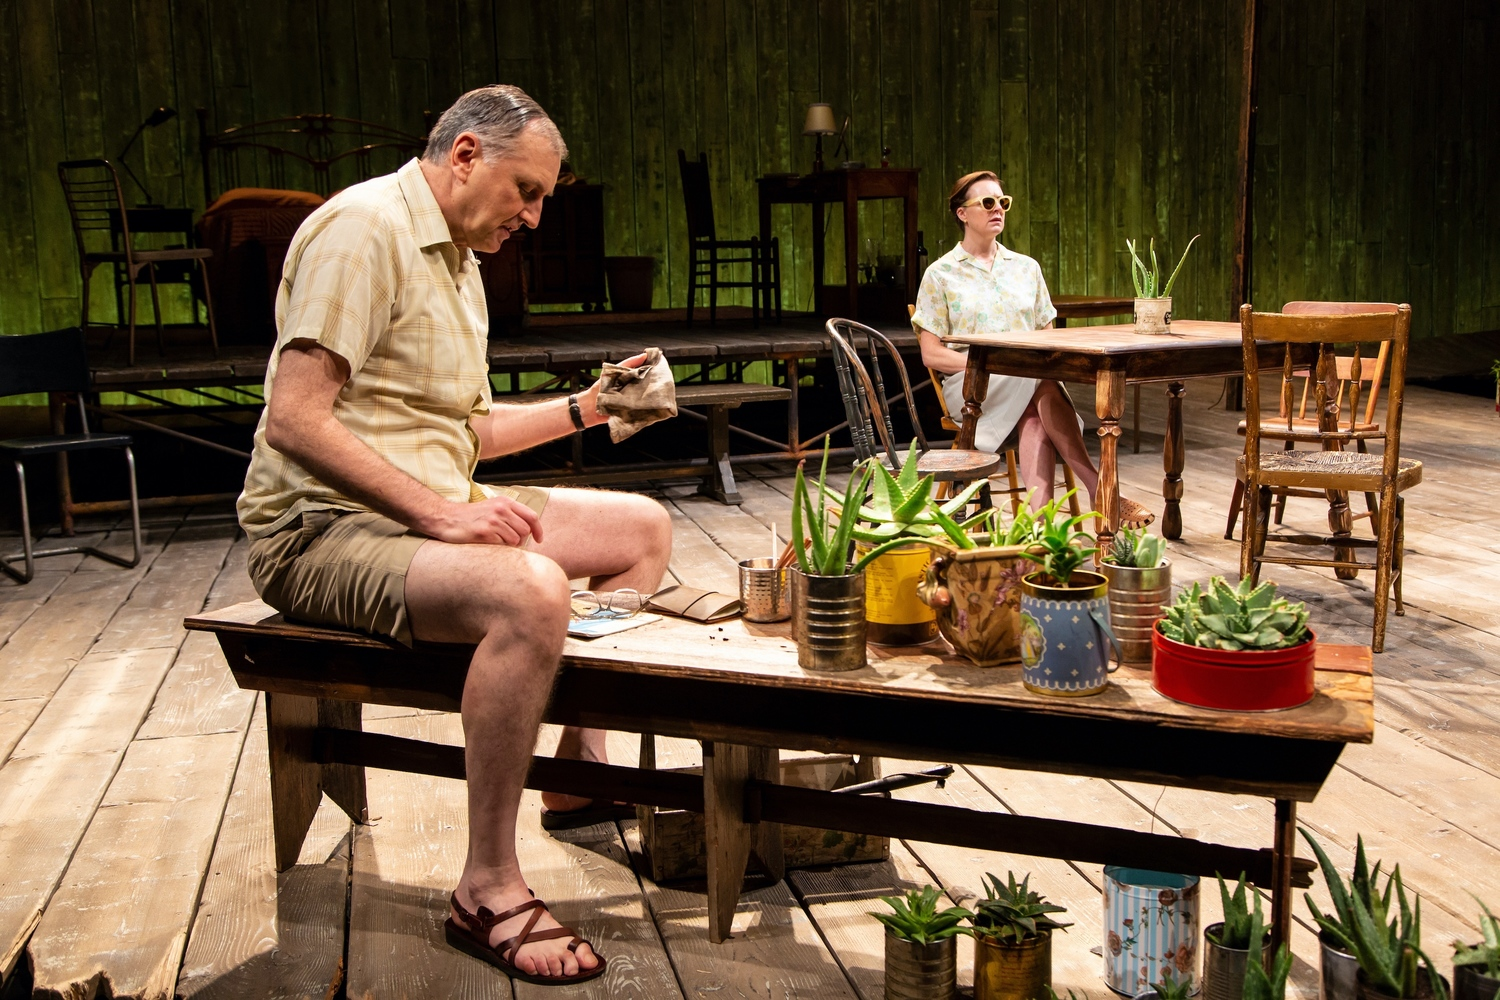 BWW Review: A LESSON FROM ALOES at Hartford Stage